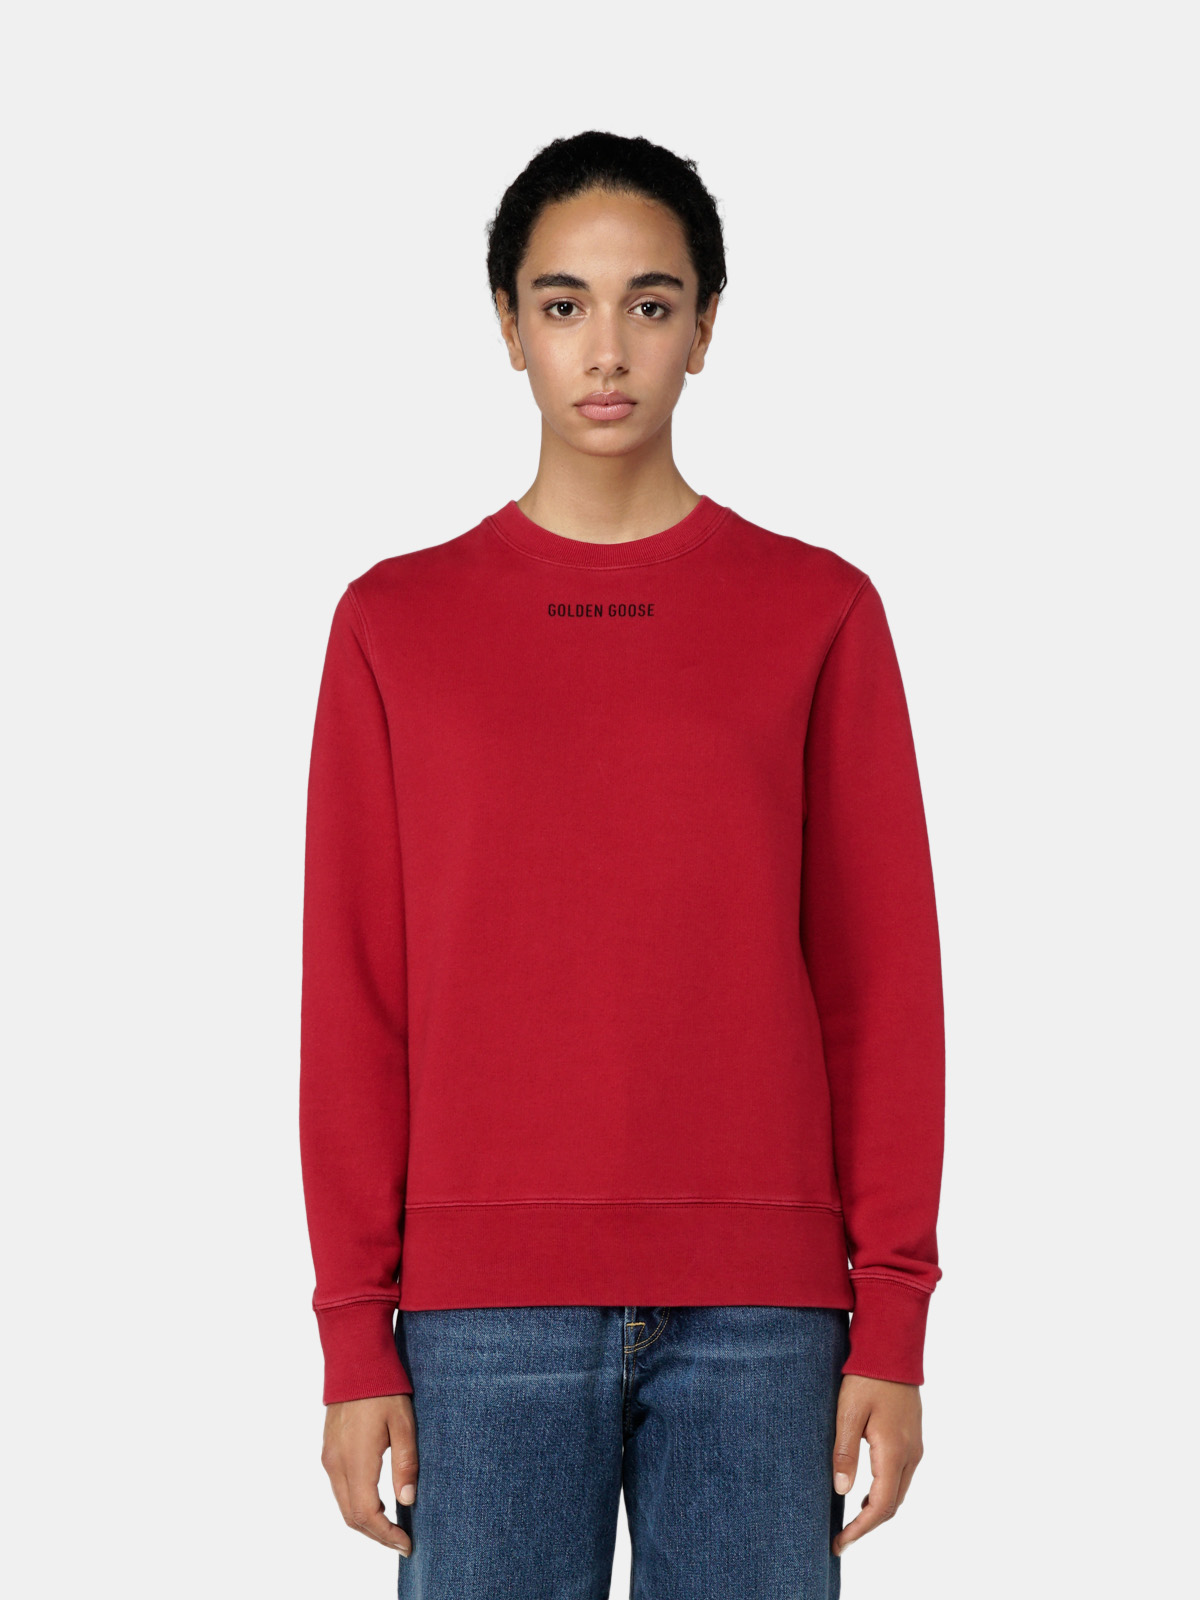 Golden Goose - Athena red round-neck sweatshirt with print on the back in